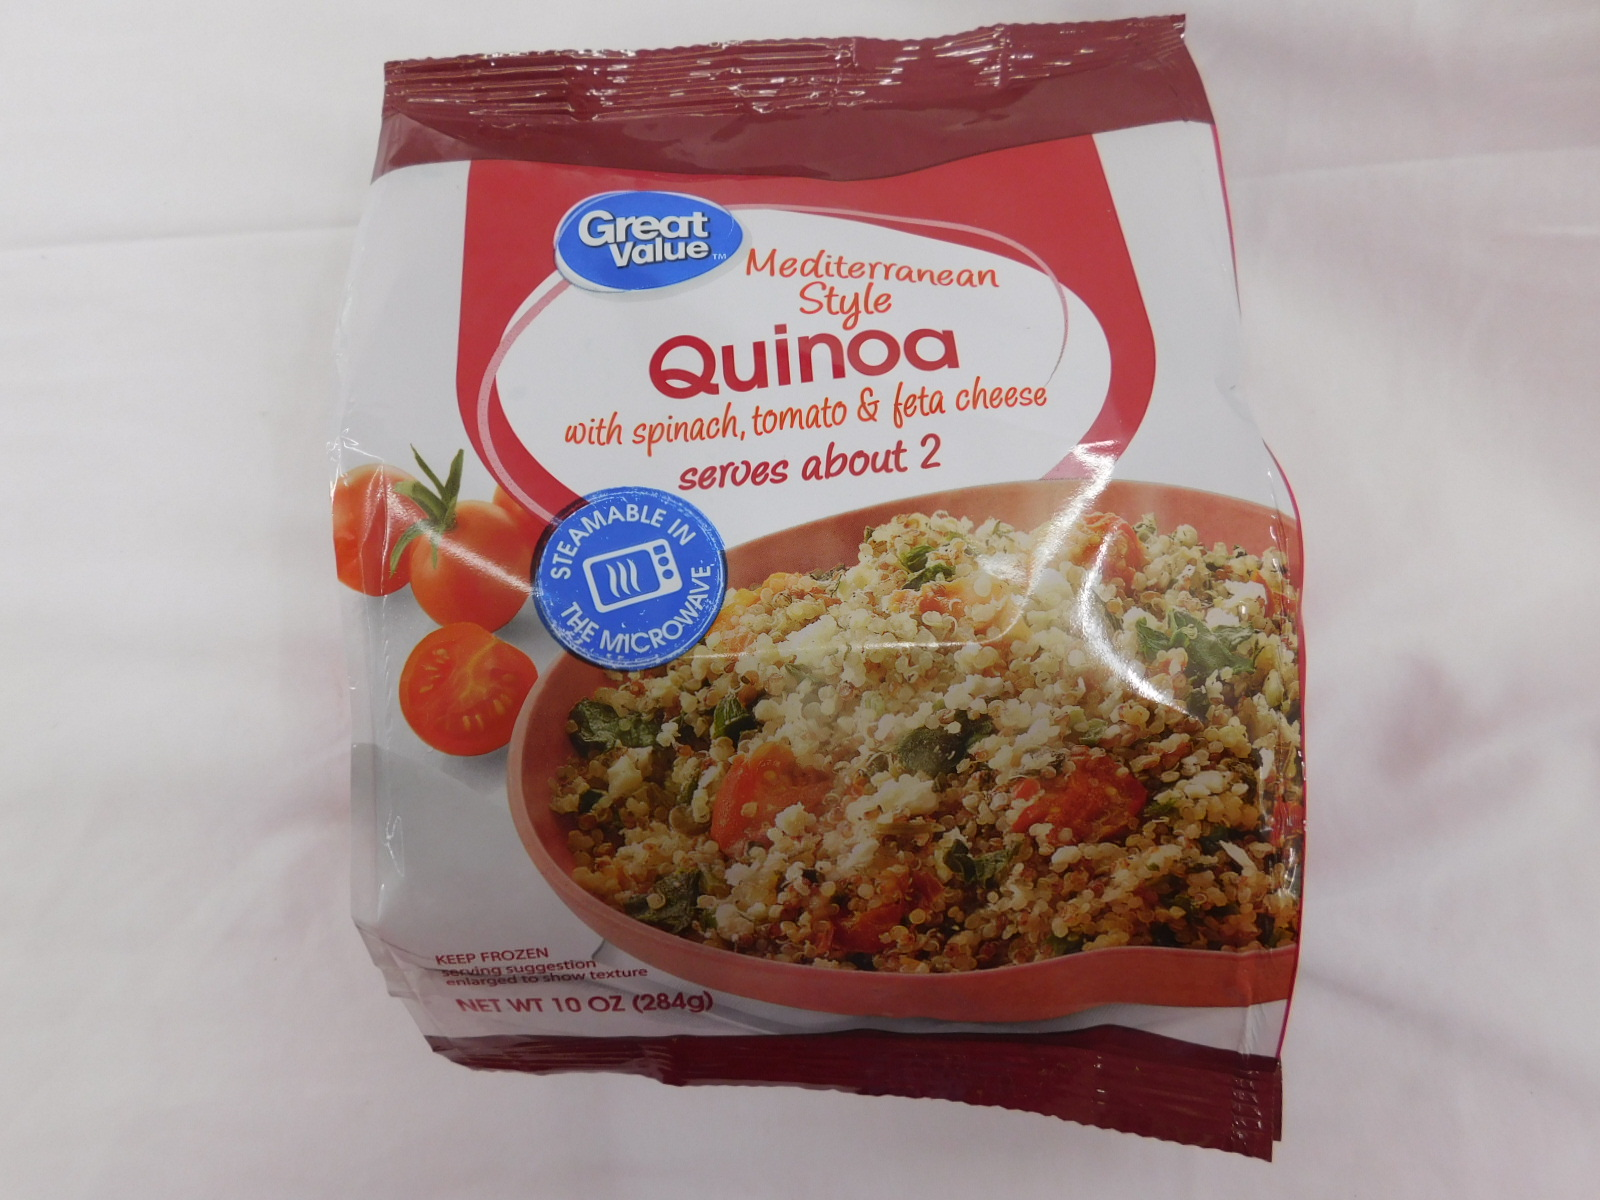 Great Value Mediterran Style Quinao With Spinach Tomato Feta Cheese.